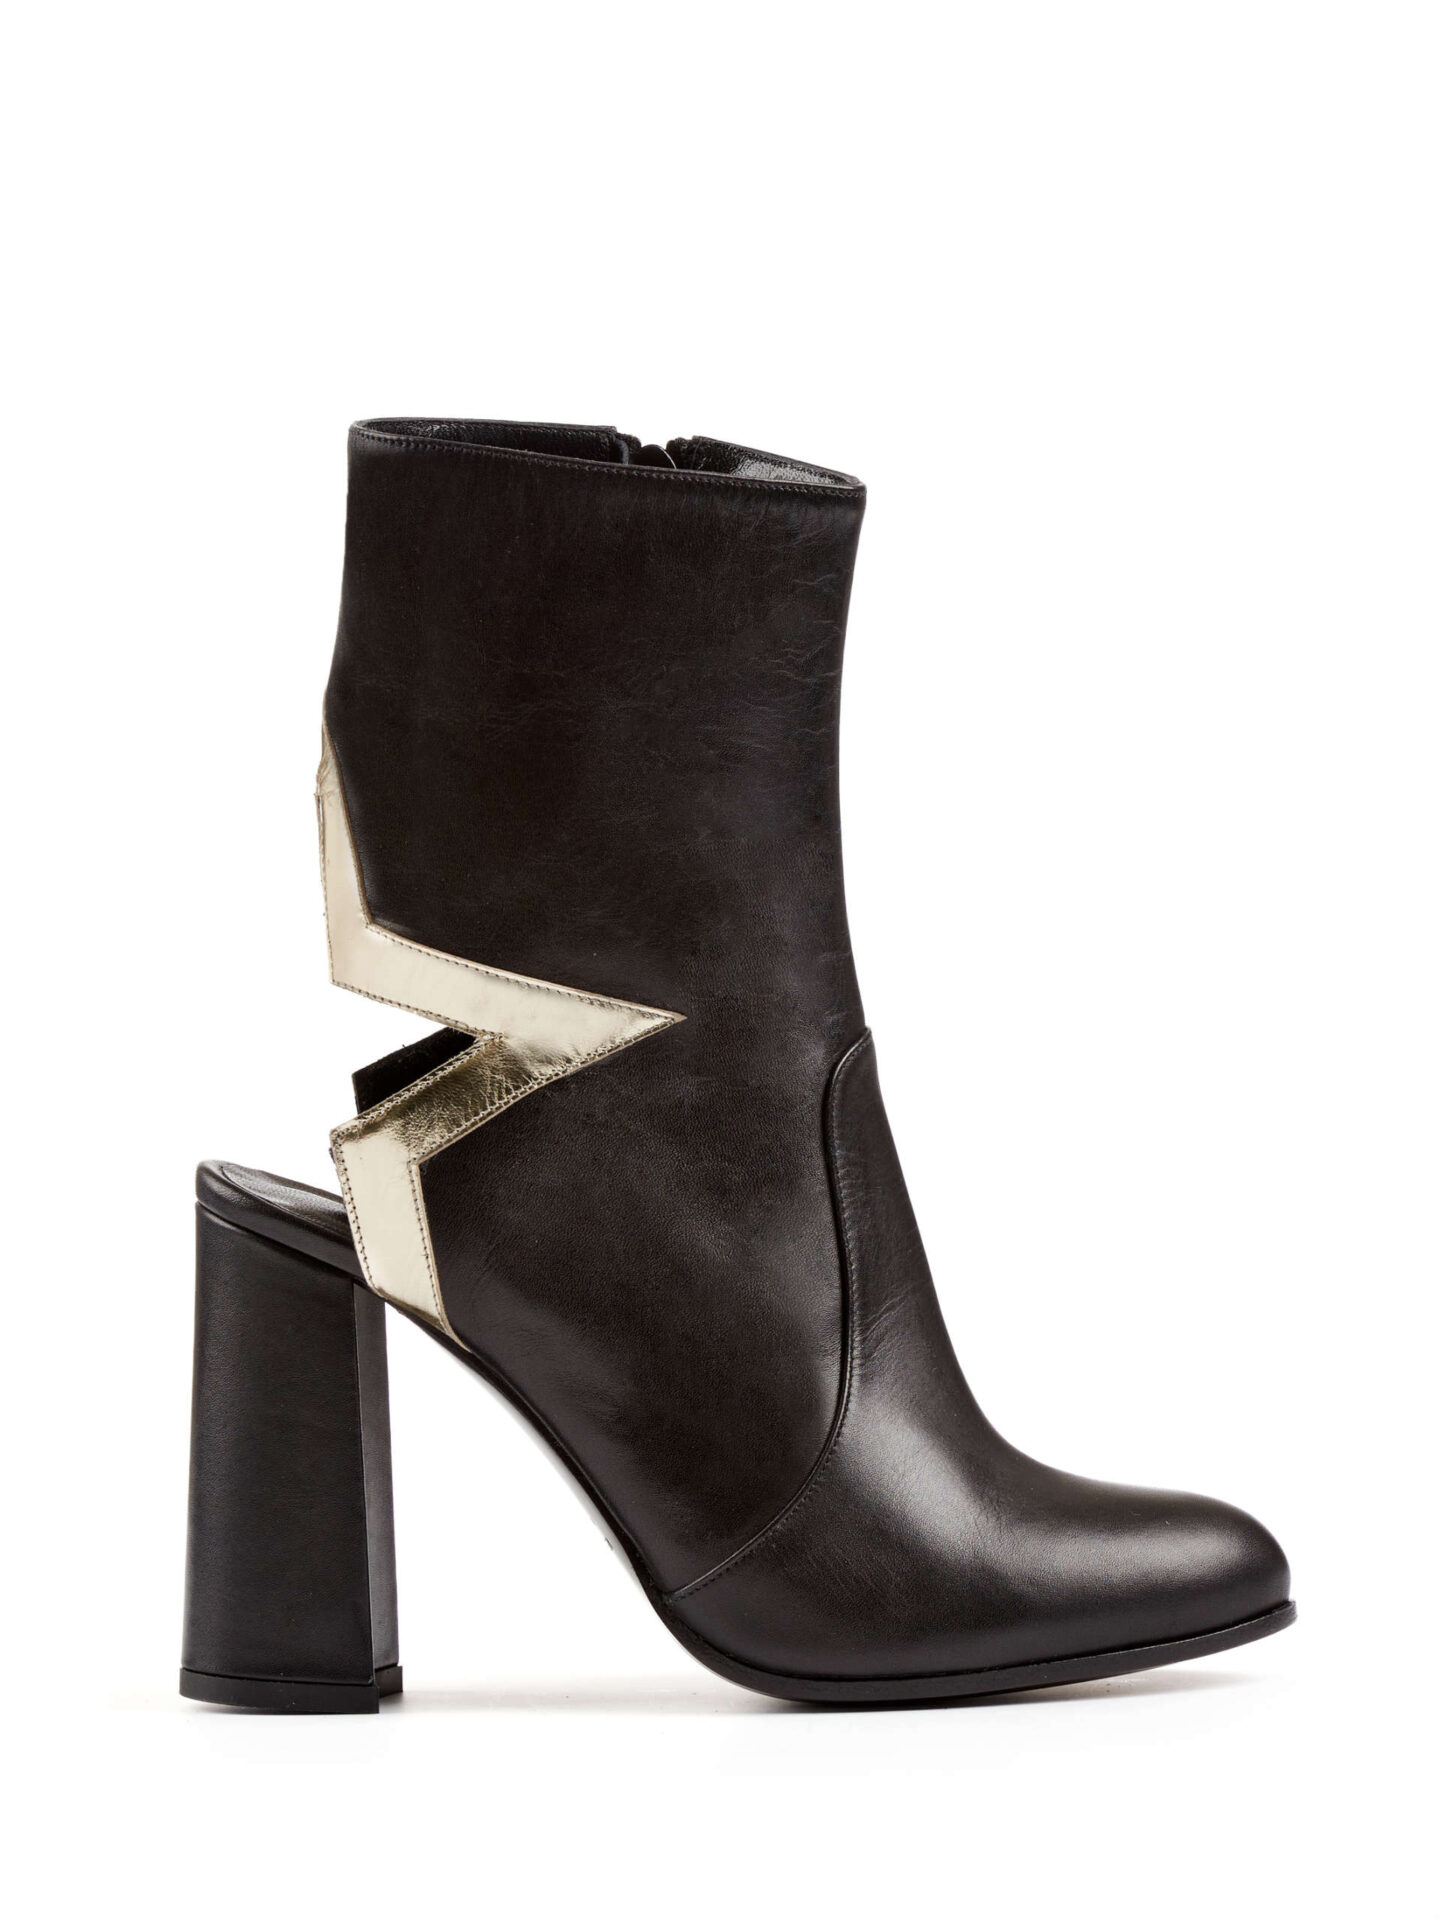 Etty-Leon-coco-womens-block-heel-star-ankle-boots